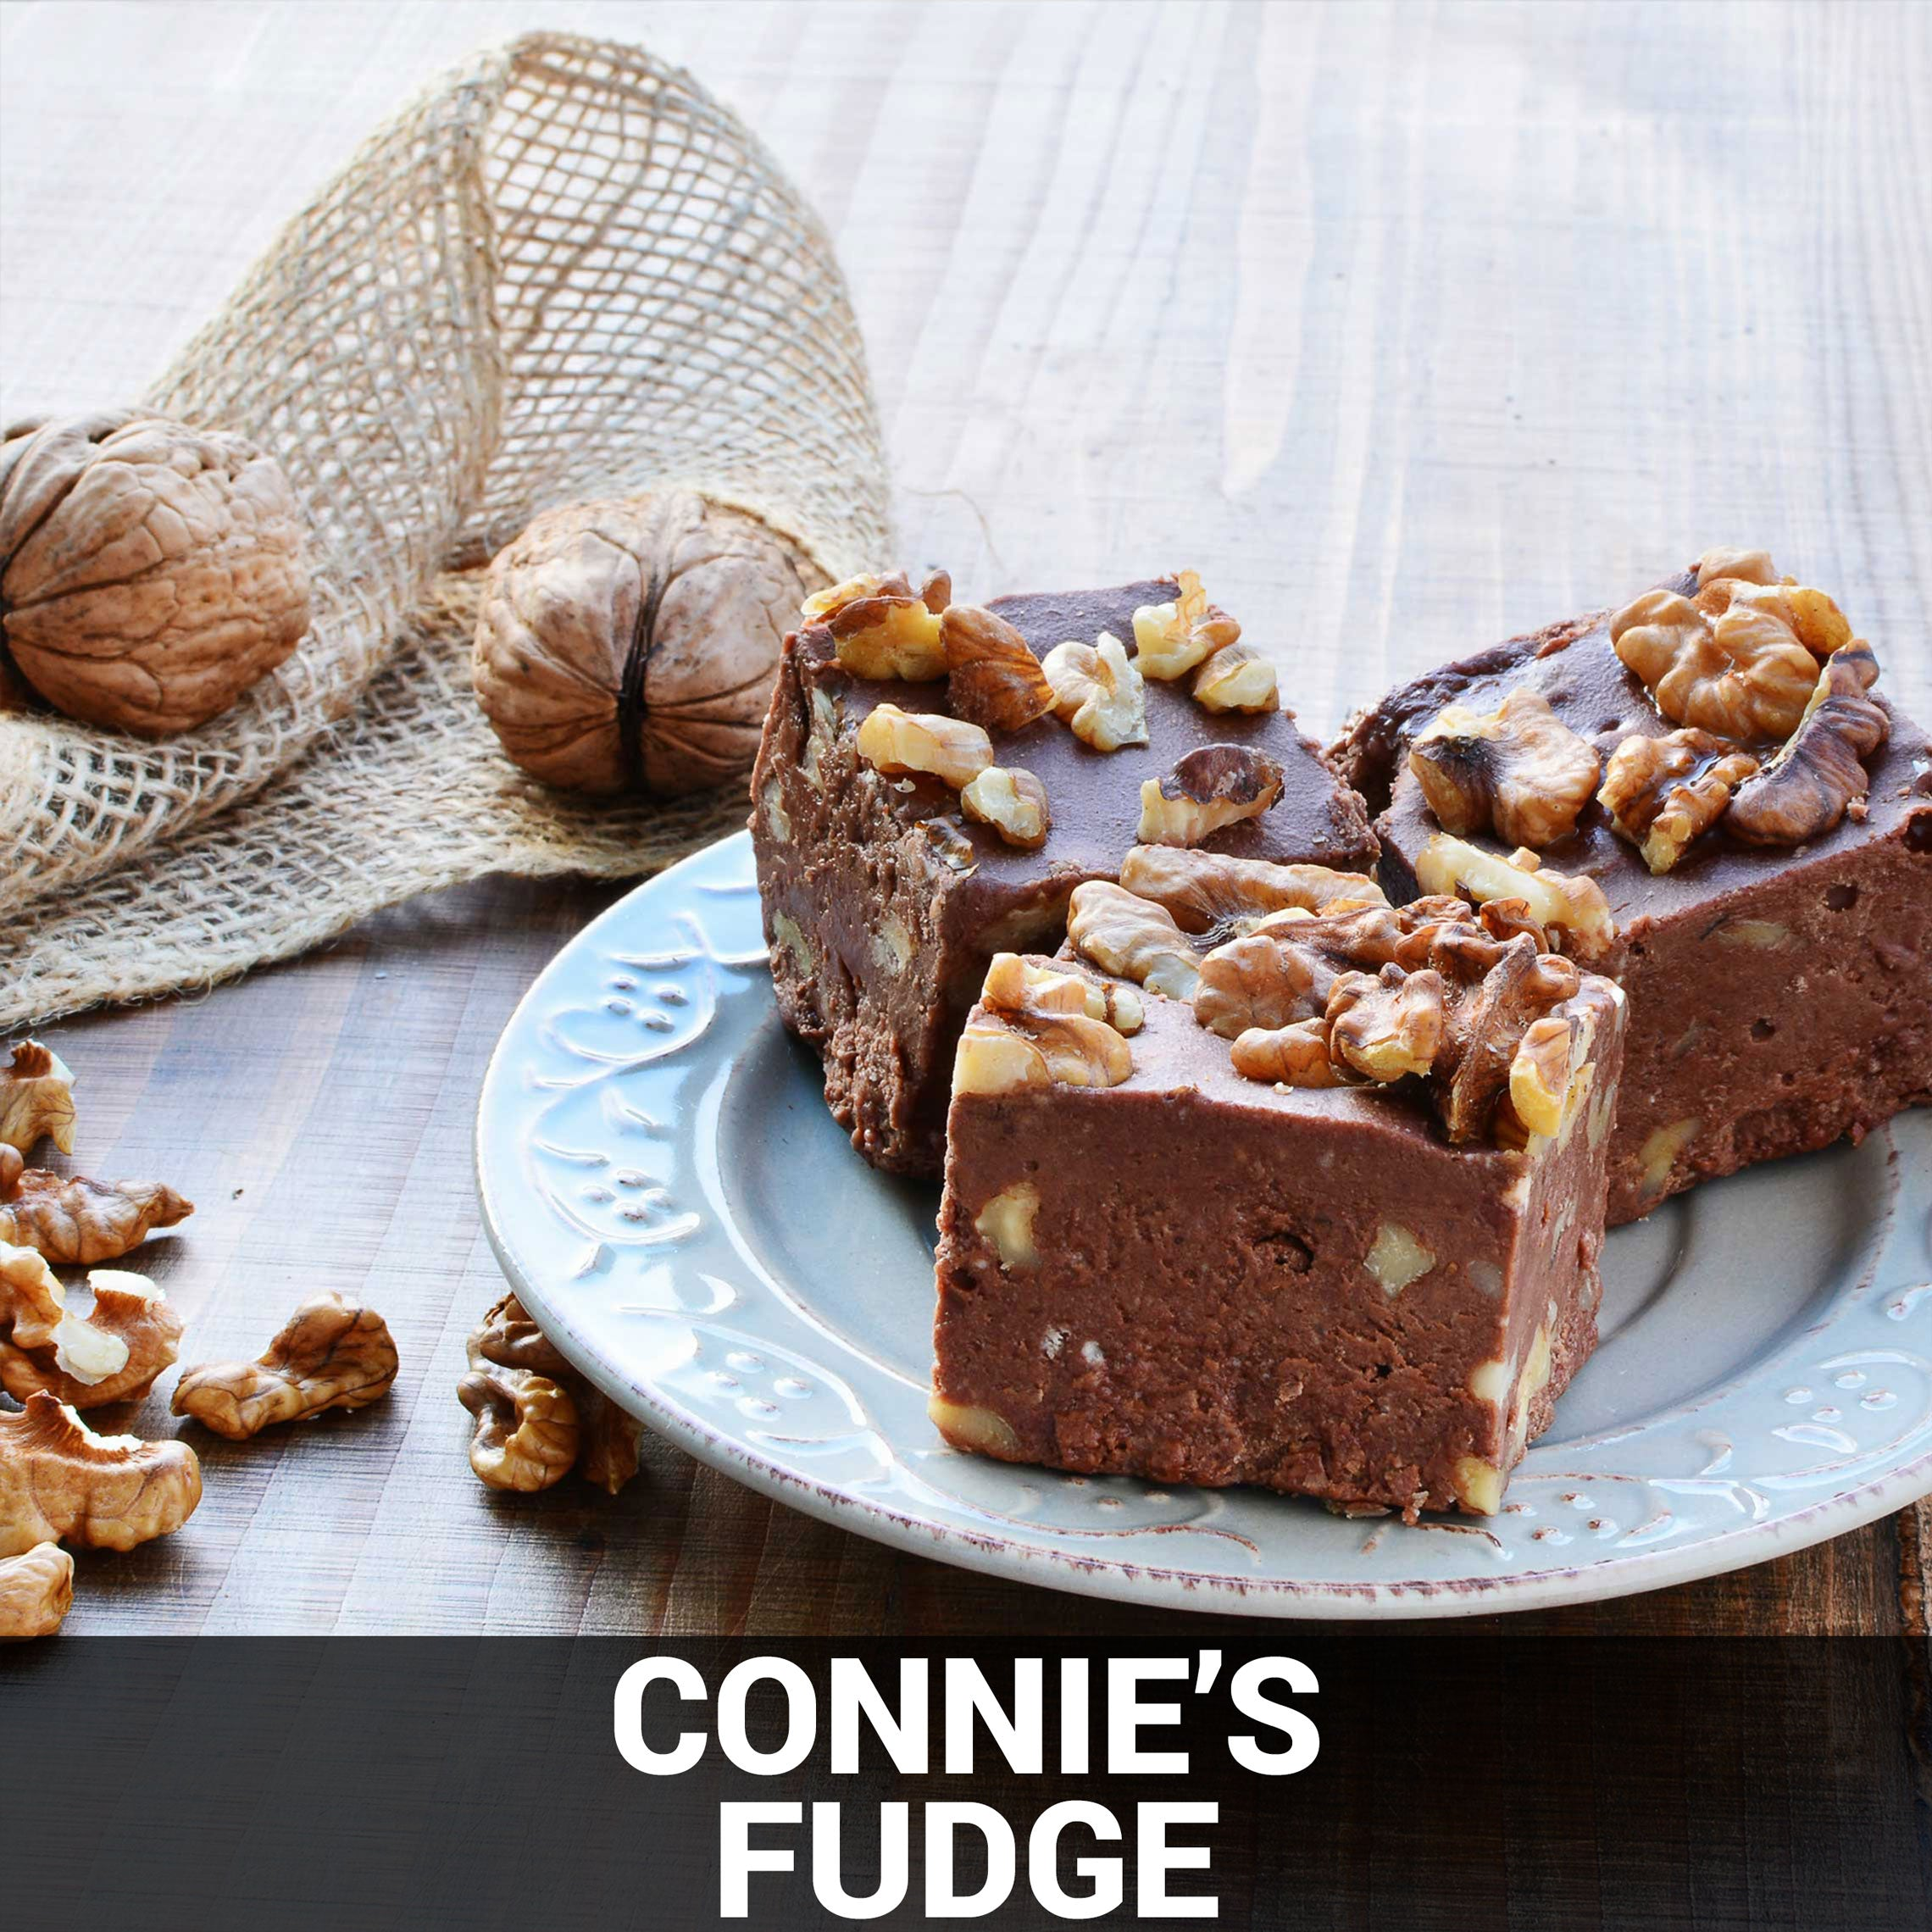 Connie's Fudge Recipe - Foods Alive